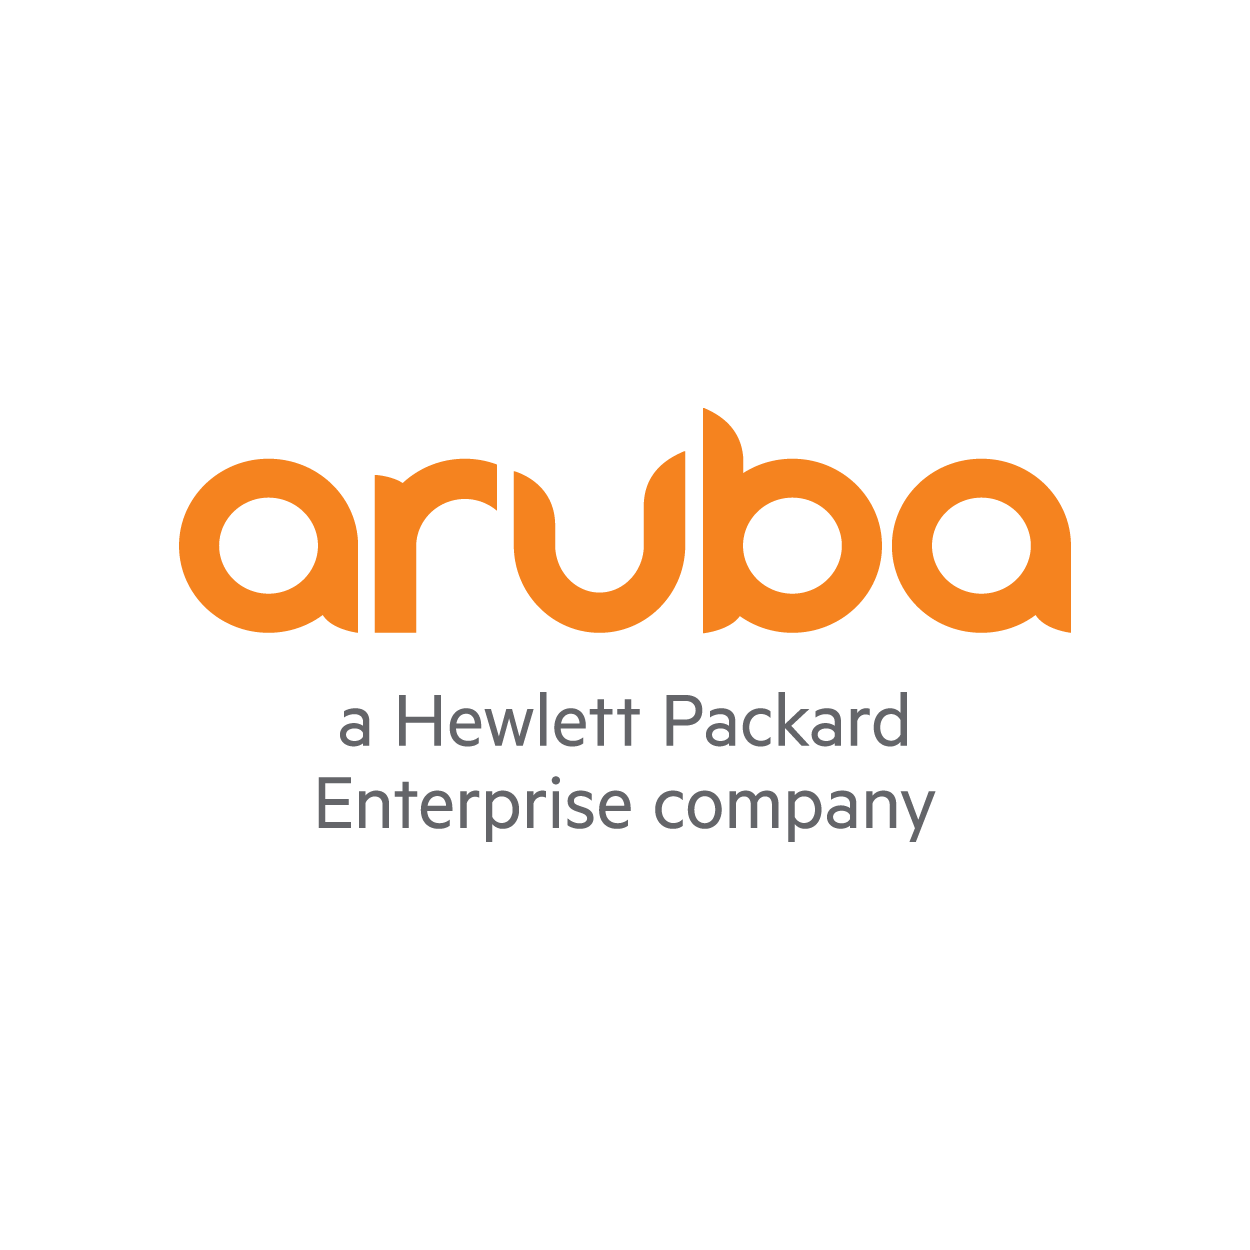 Aruba: A Hewlett Packard Enterprise Company